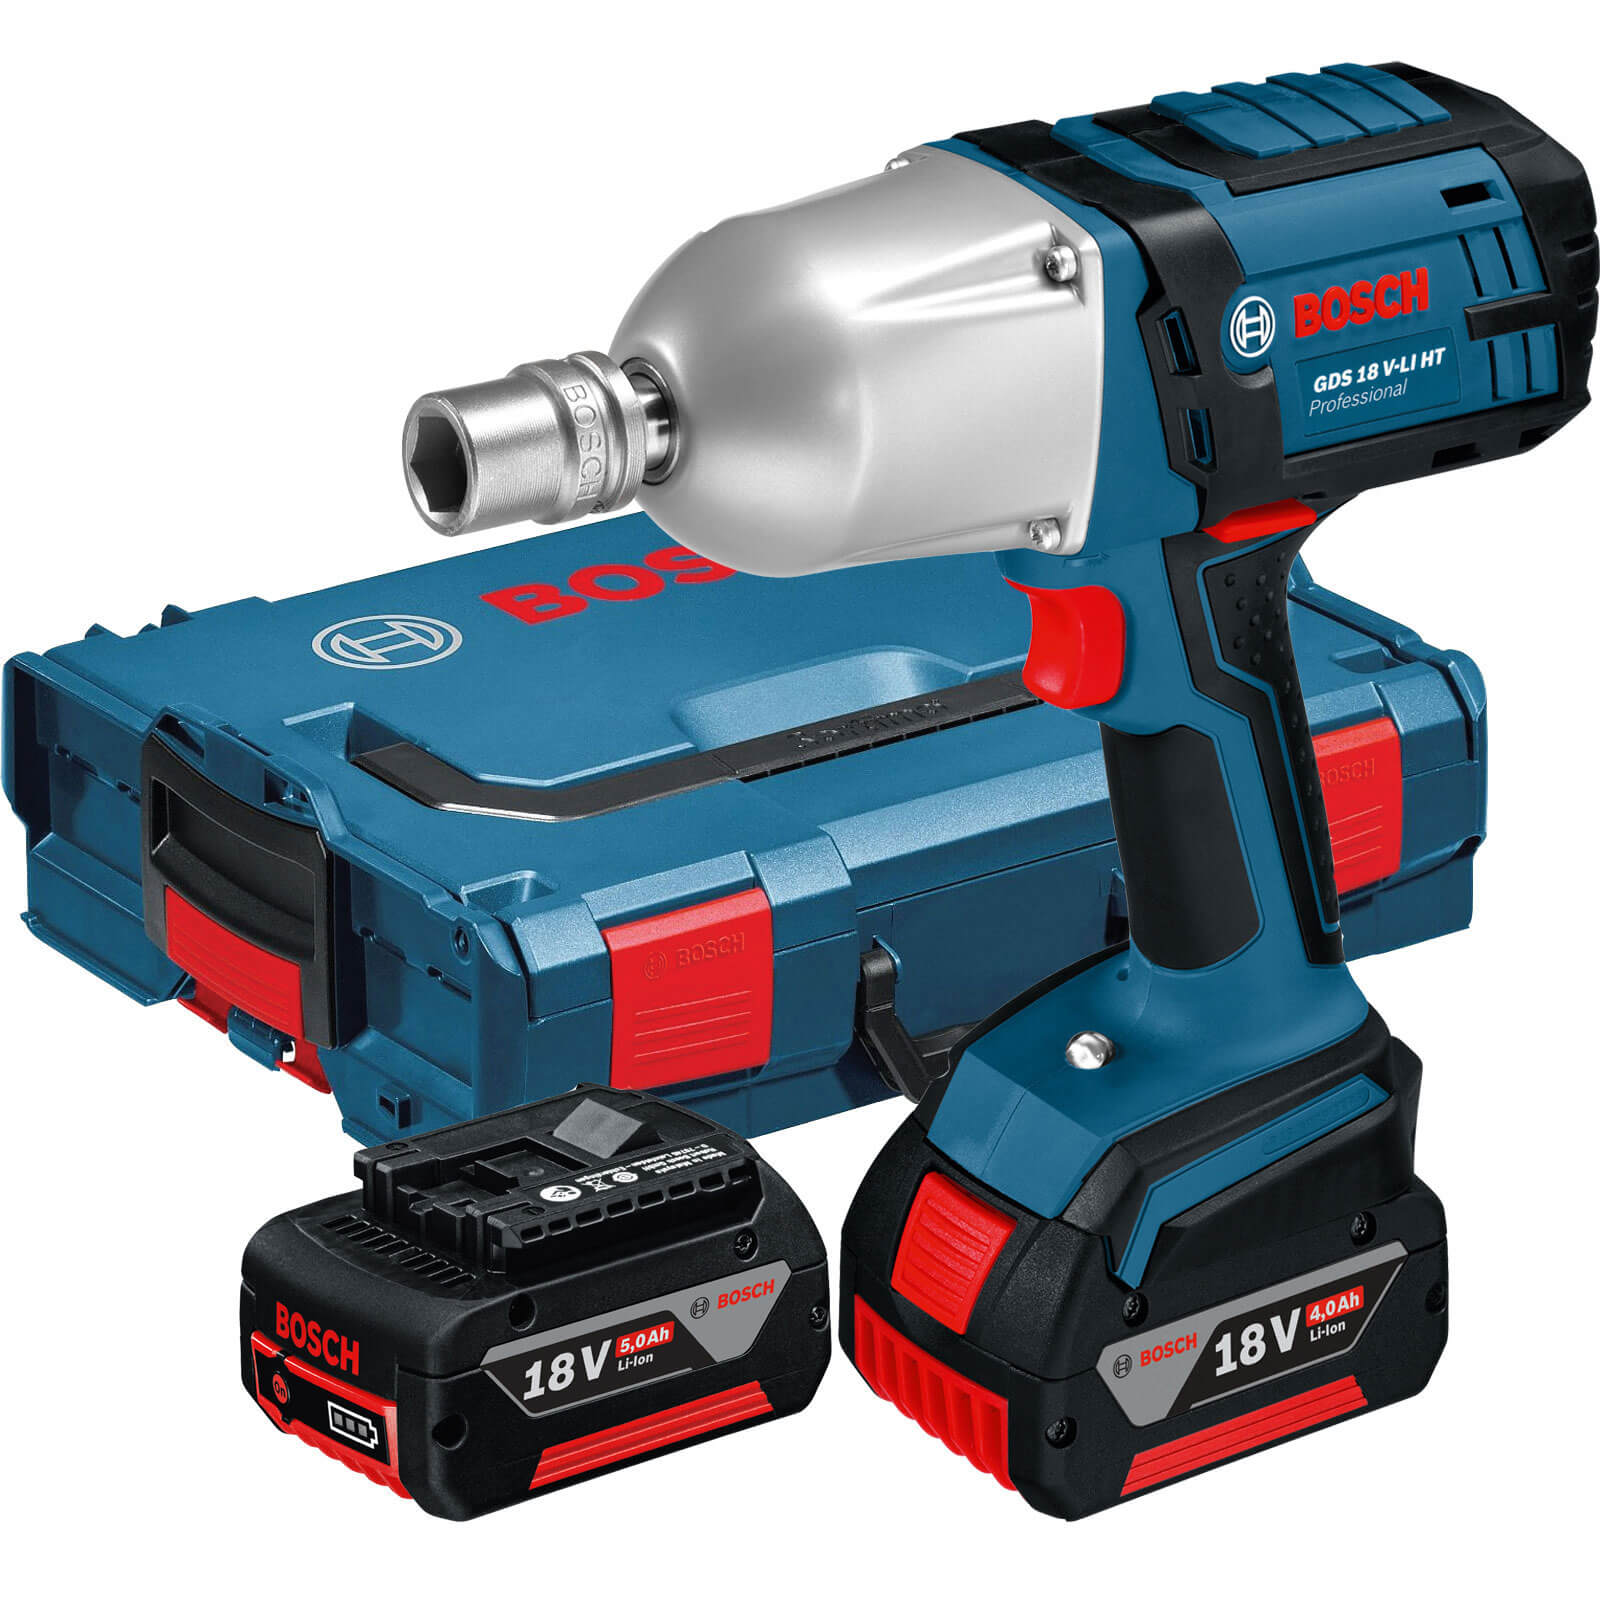 Bosch GDS 18 VLI HT 18v Cordless 12 Drive Impact Wrench 2 x 5ah Liion Charger Case